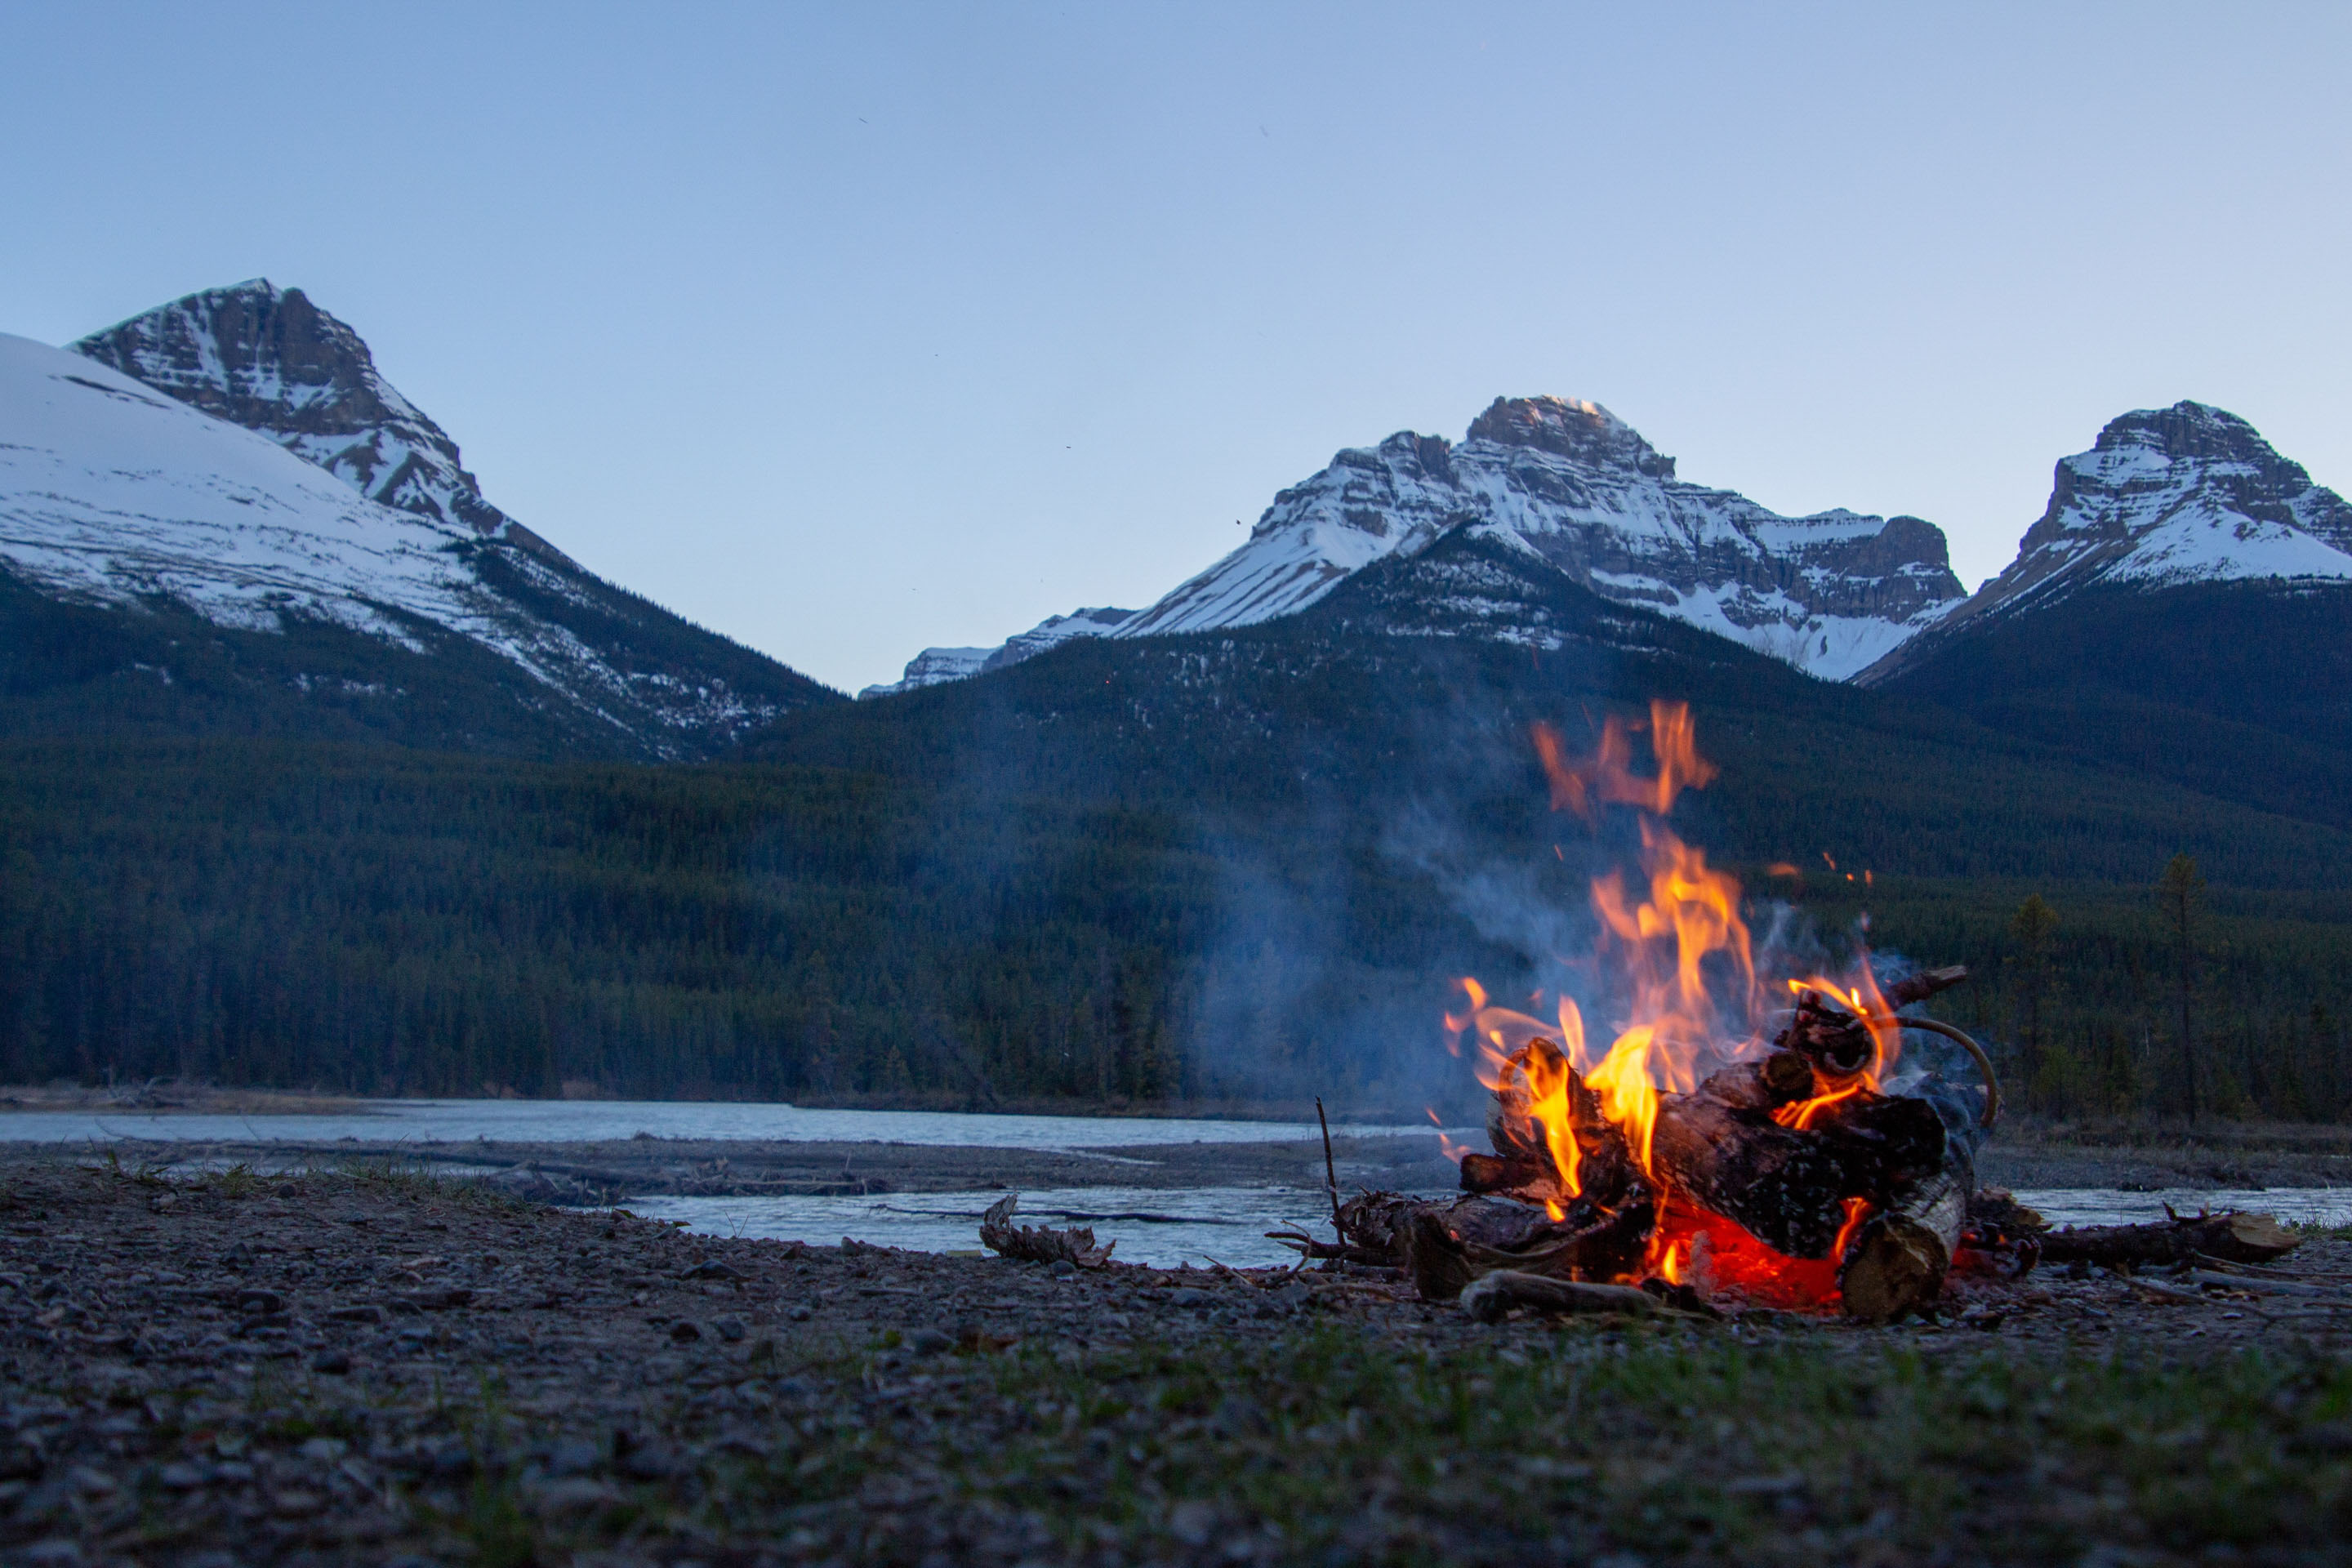 Summer time fire-it in front of mountains. Unsplash - Courtnie Tosana